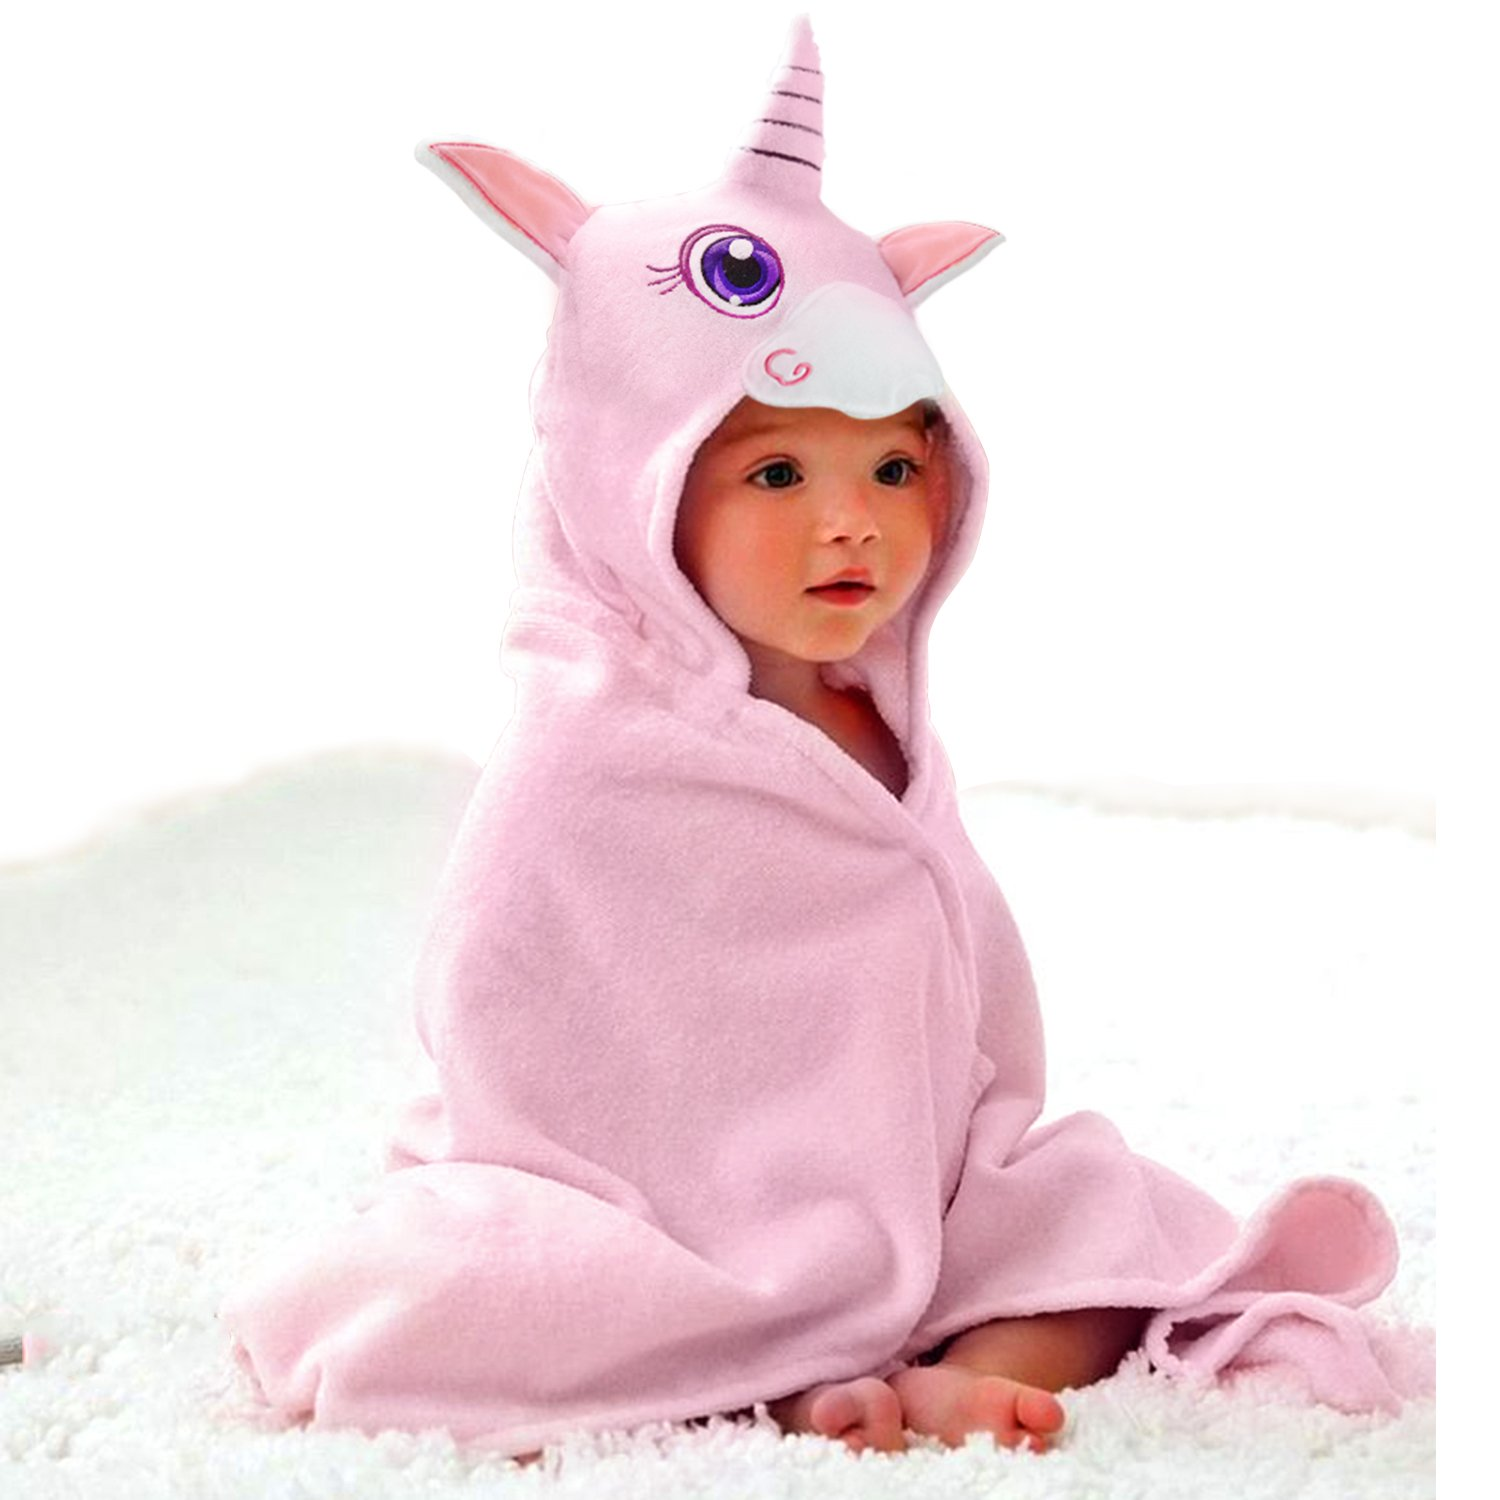 Baby Hooded Towel Upsimples Unicorn Baby Towels for Baby Girls 35 × 35 Inches Ultra Large 500GSM Super Soft Organic Bamboo Baby Towels for Baby Infant Toddler | Baby Girl Shower Gift Photo Shoot Props by upsimples